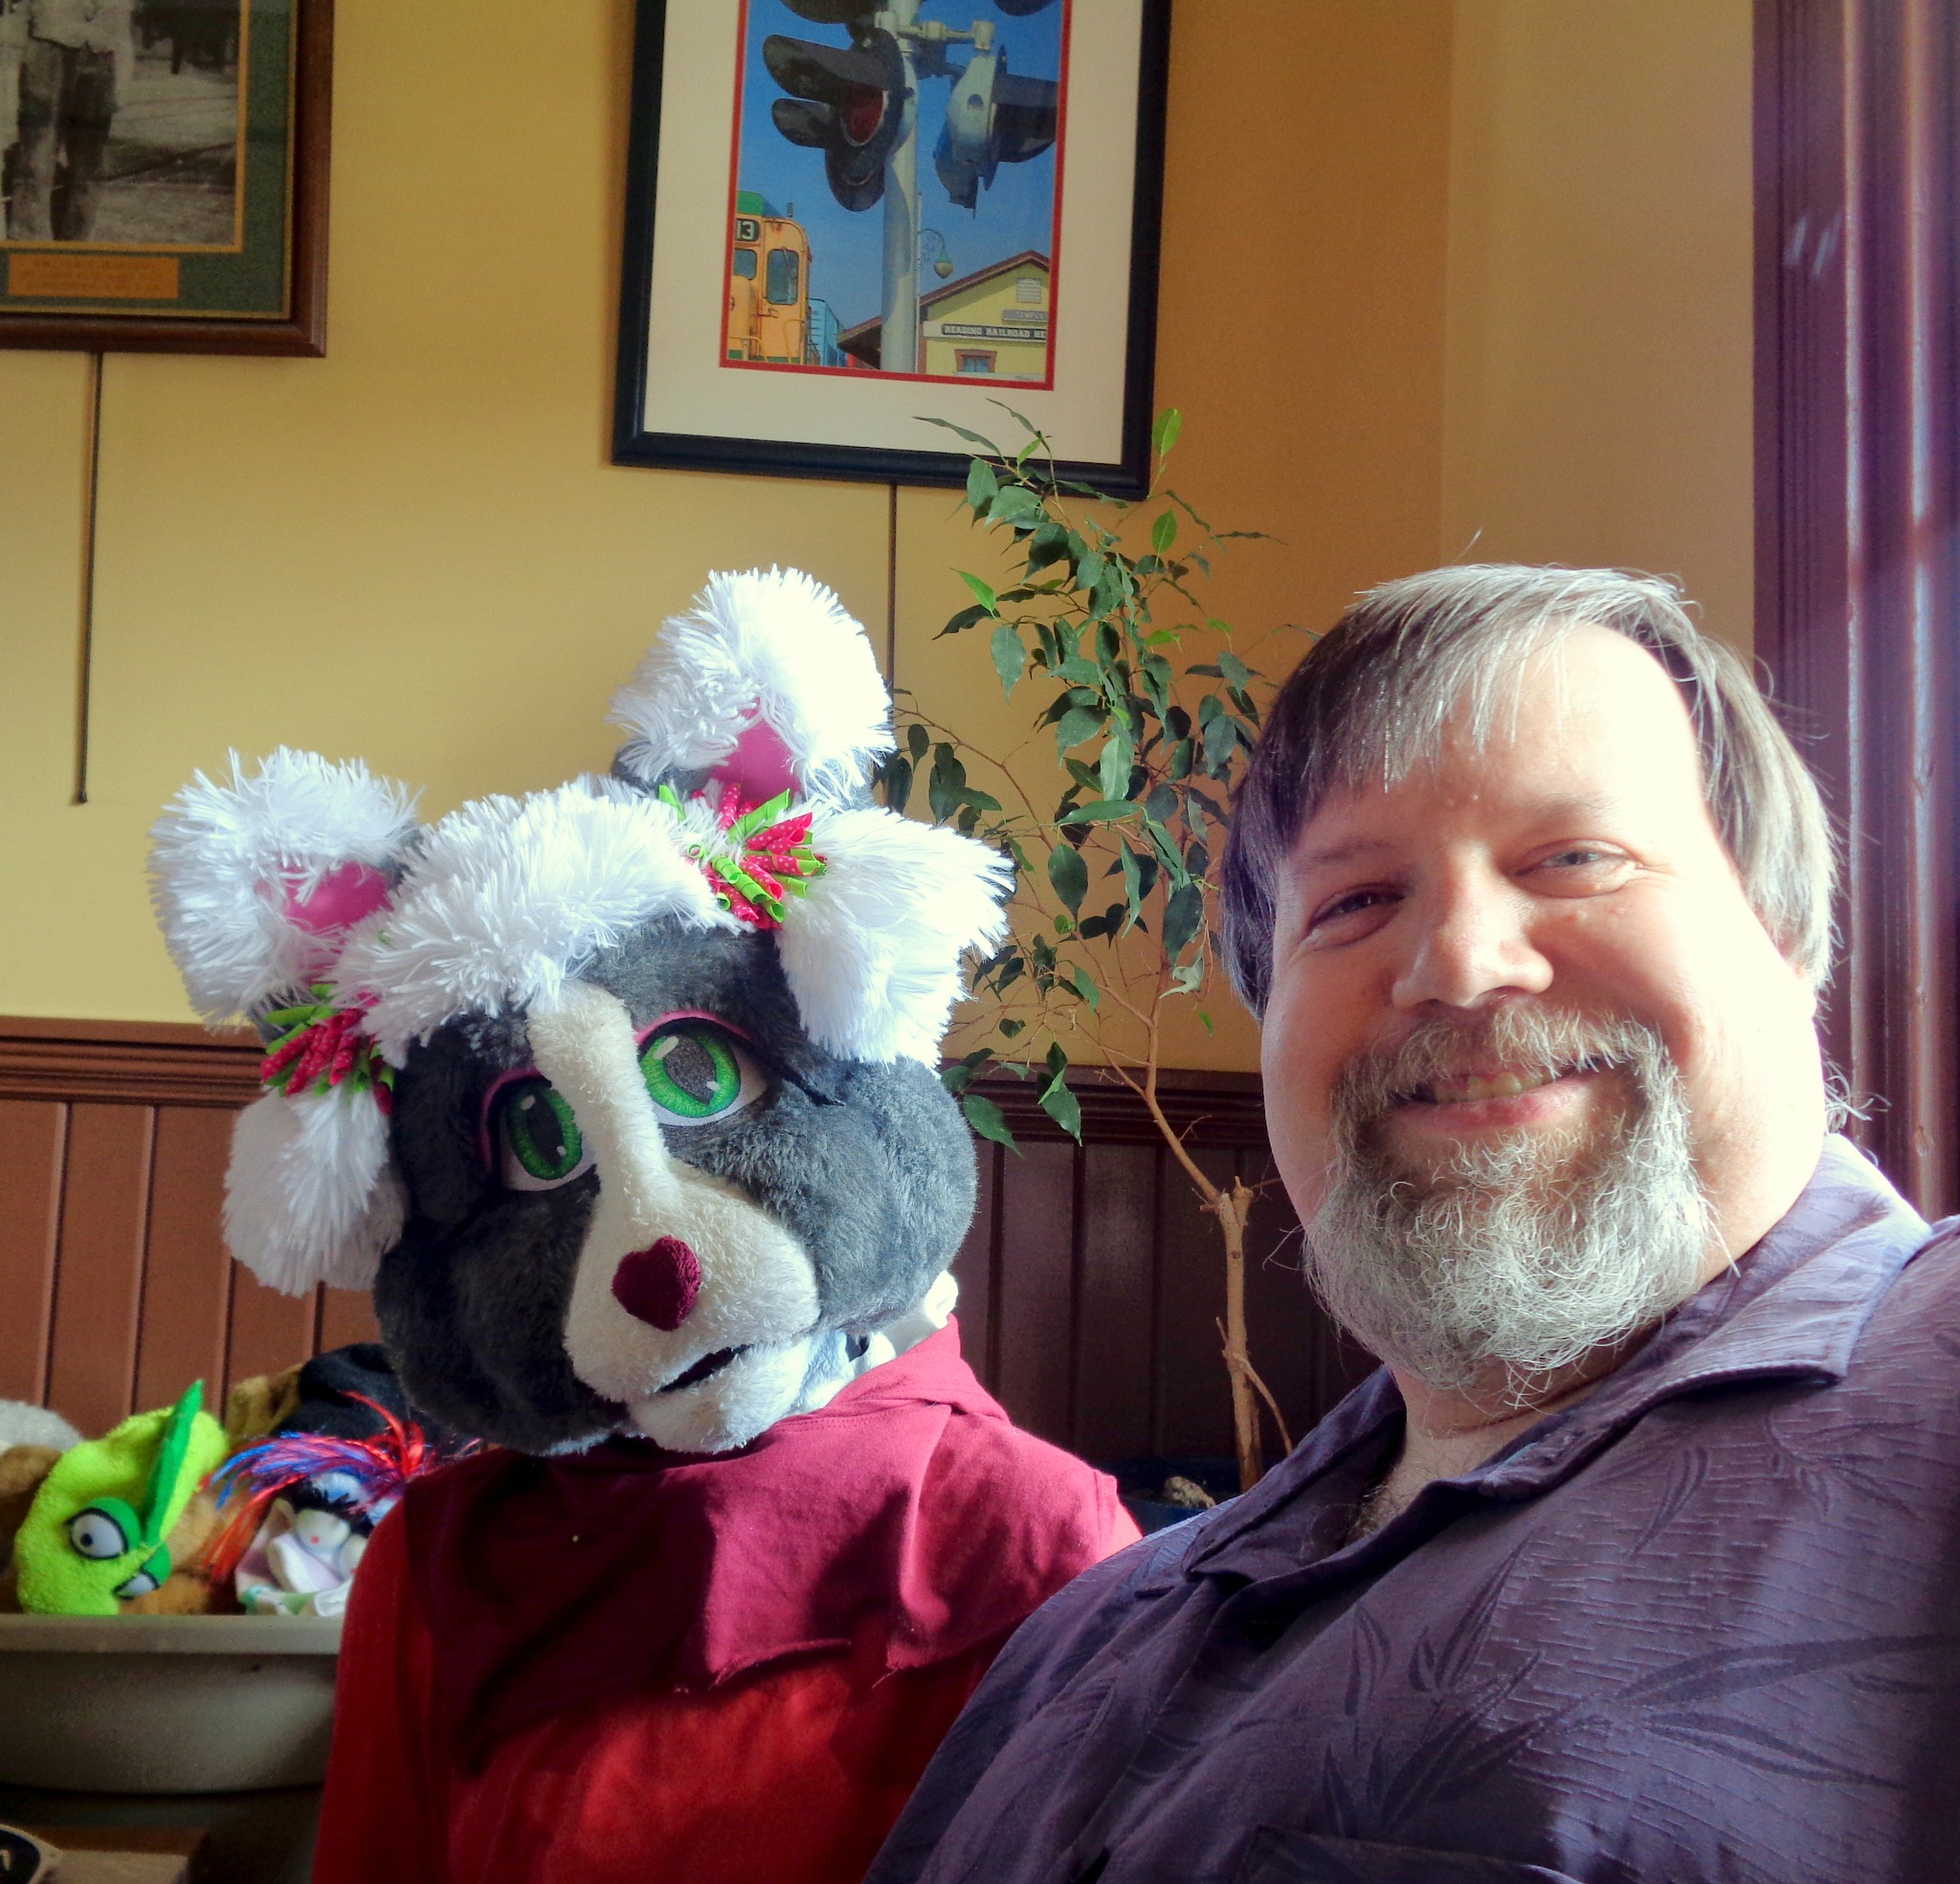 Puppet Discovery Day on March 11, 2018 at the Gaithersburg Community Museum by NatalyaParris